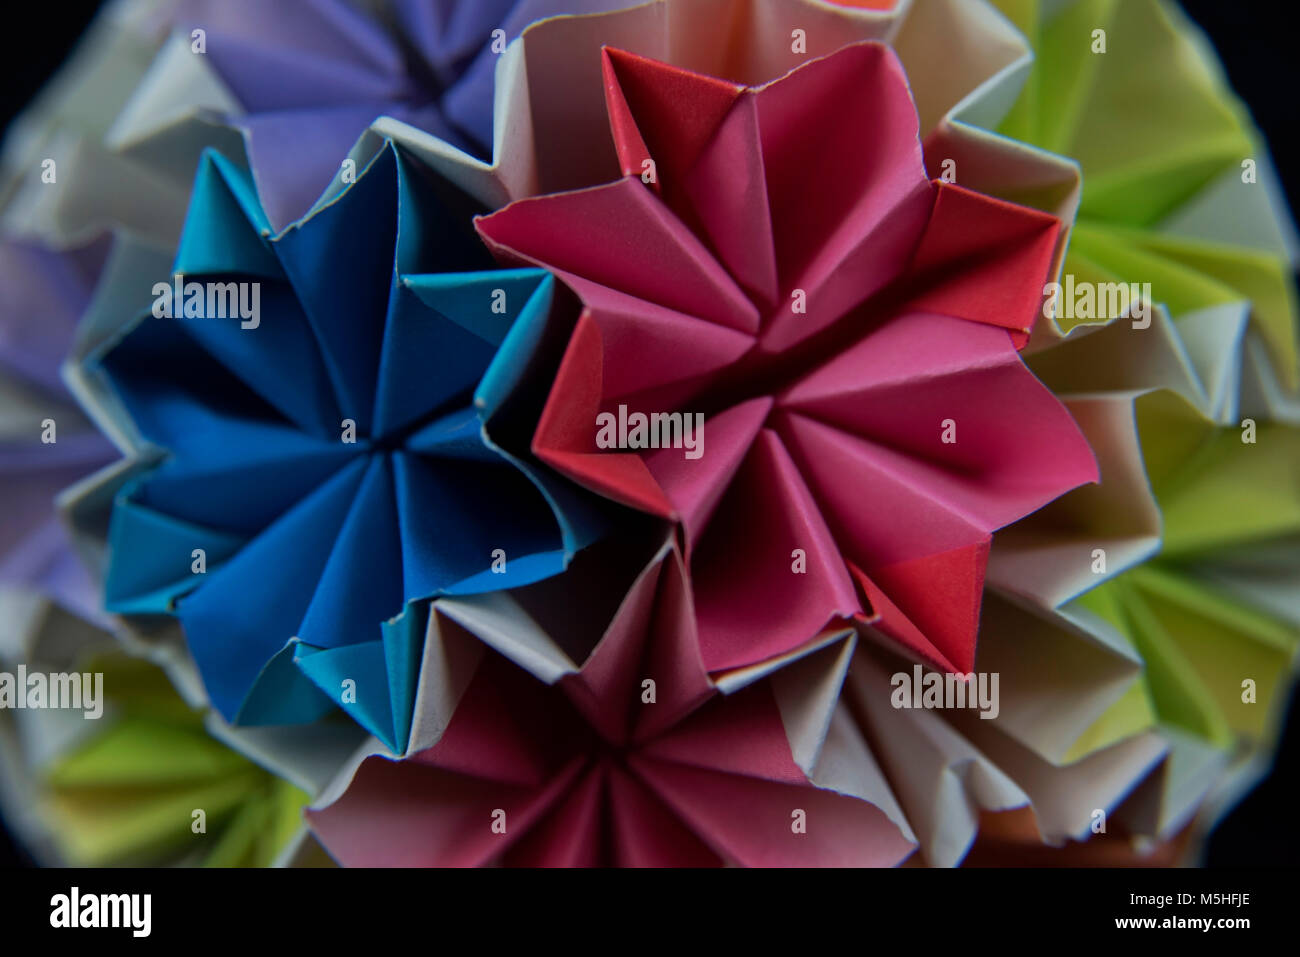 Paper Folding Stock Photos Paper Folding Stock Images Alamy